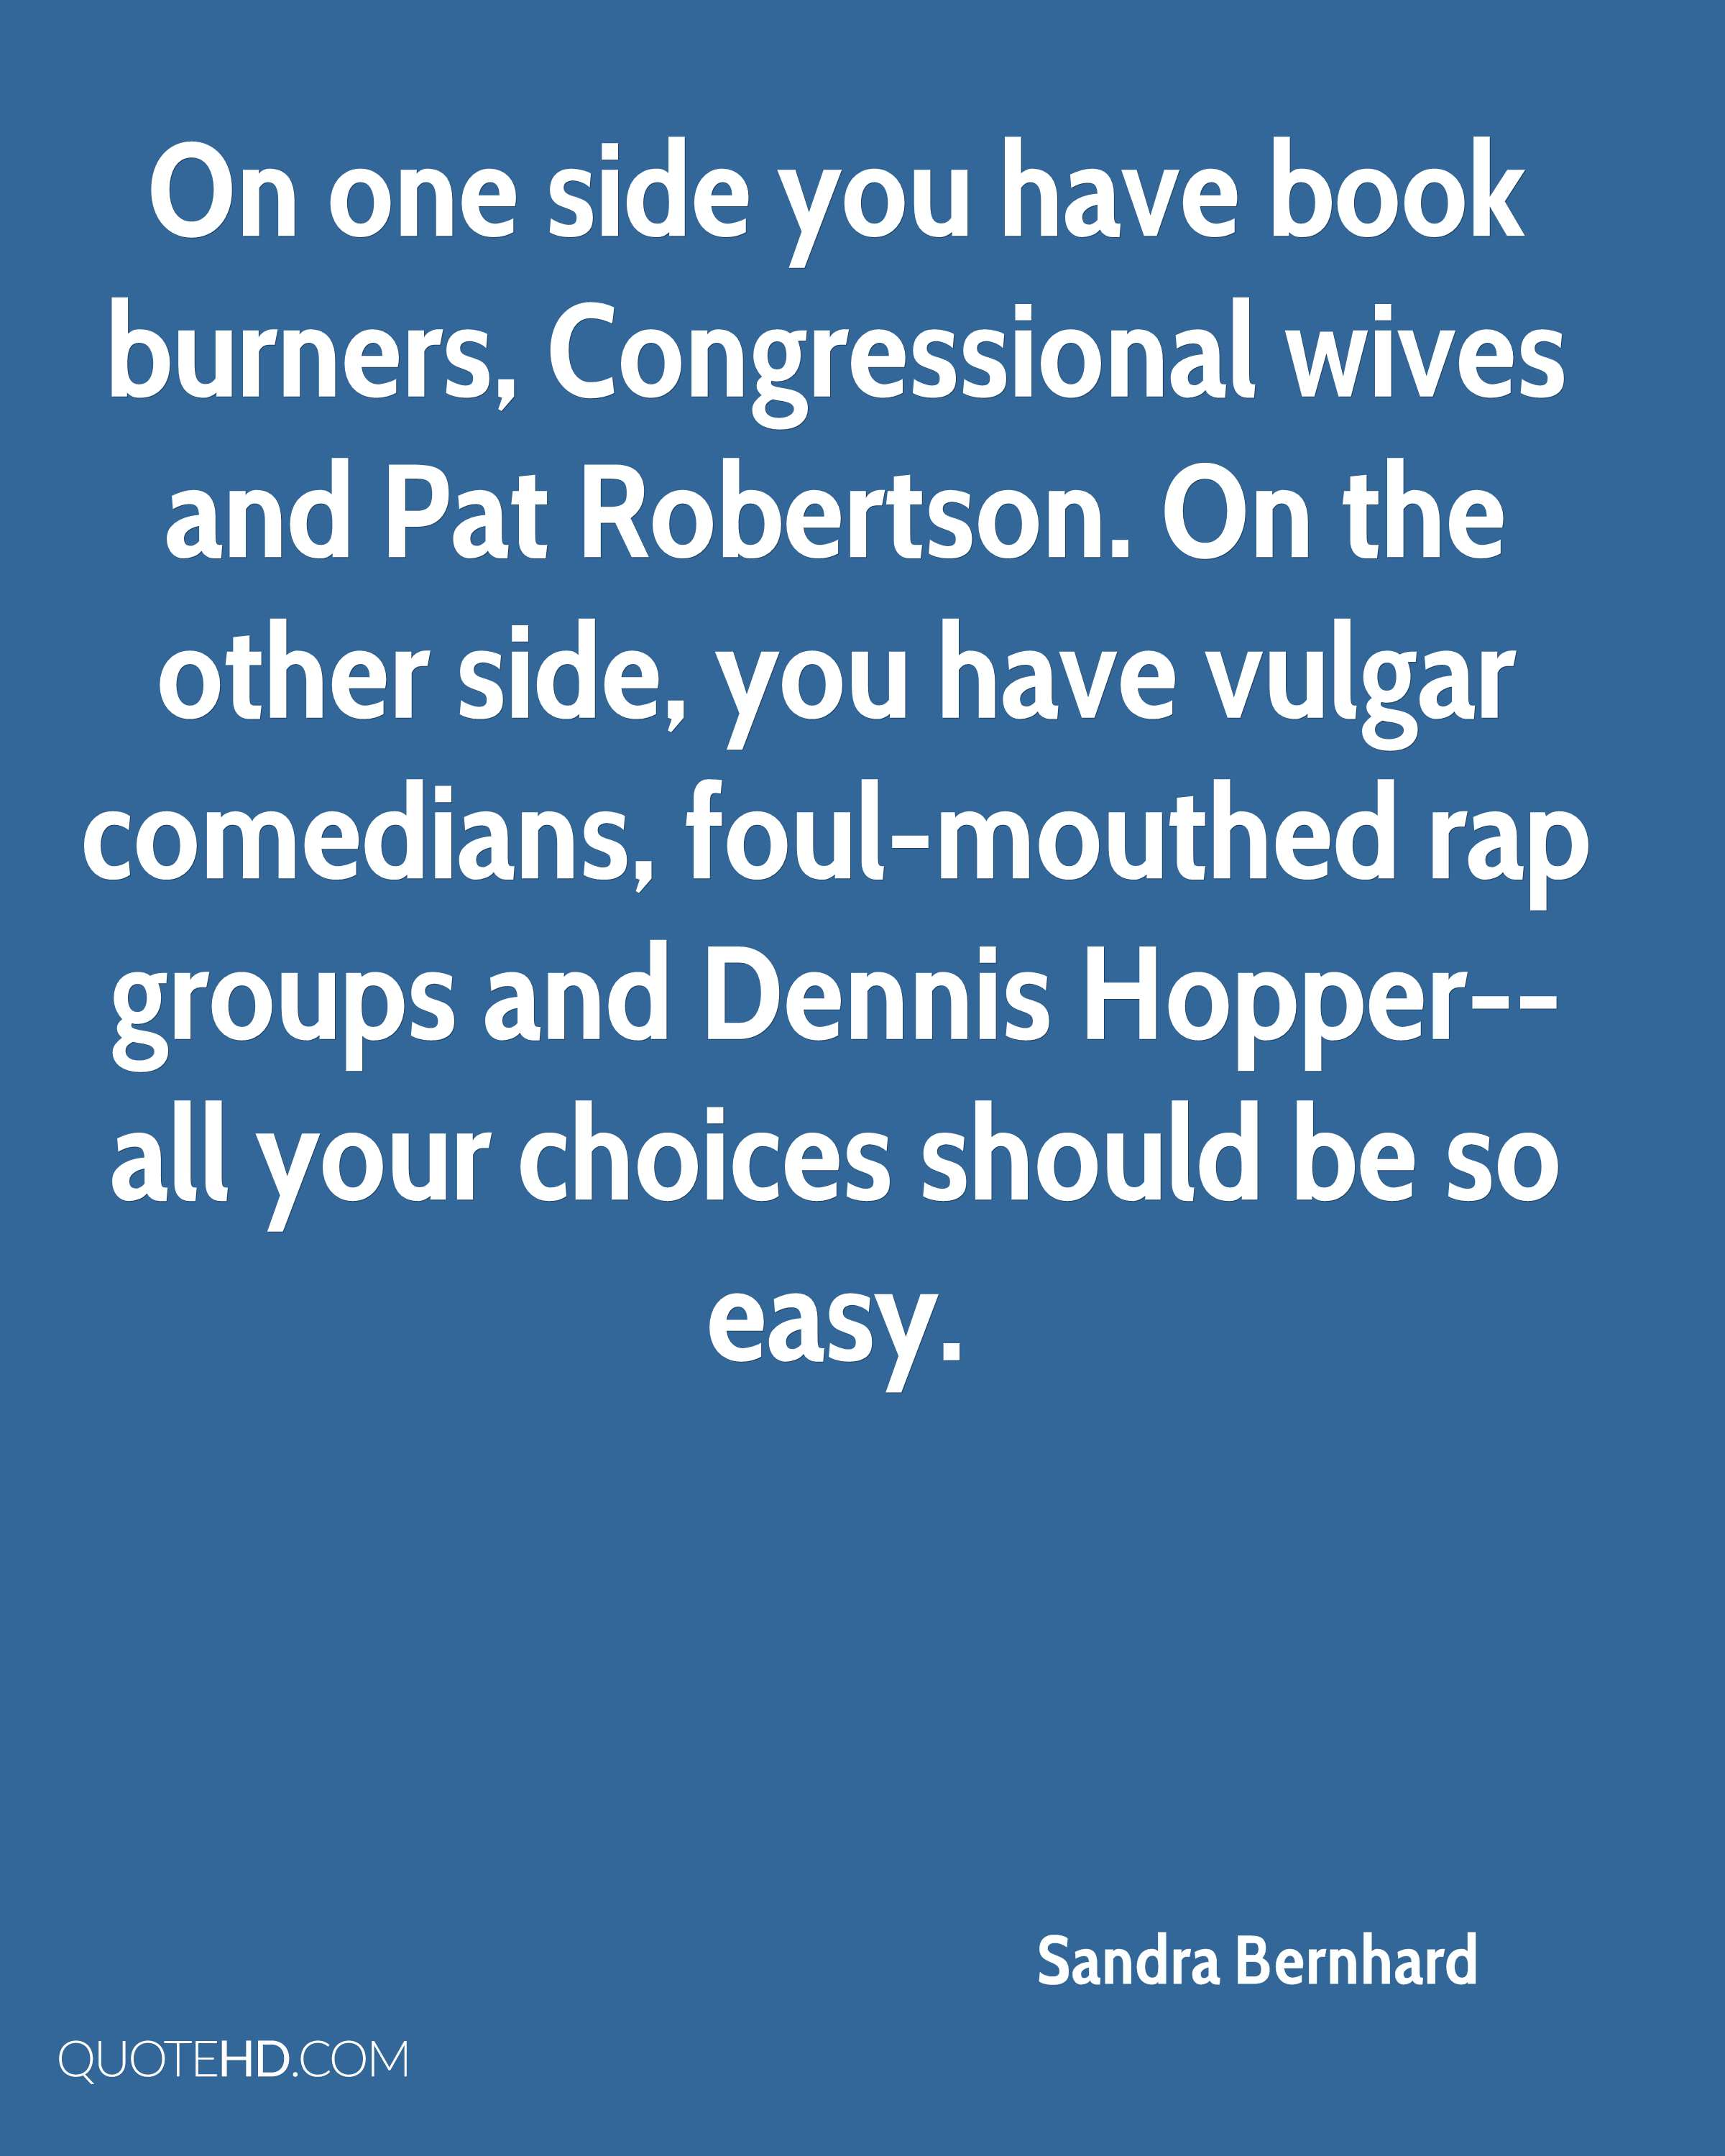 On one side you have book burners, Congressional wives and Pat Robertson. On the other side, you have vulgar comedians, foul-mouthed rap groups and Dennis Hopper--all your choices should be so easy.